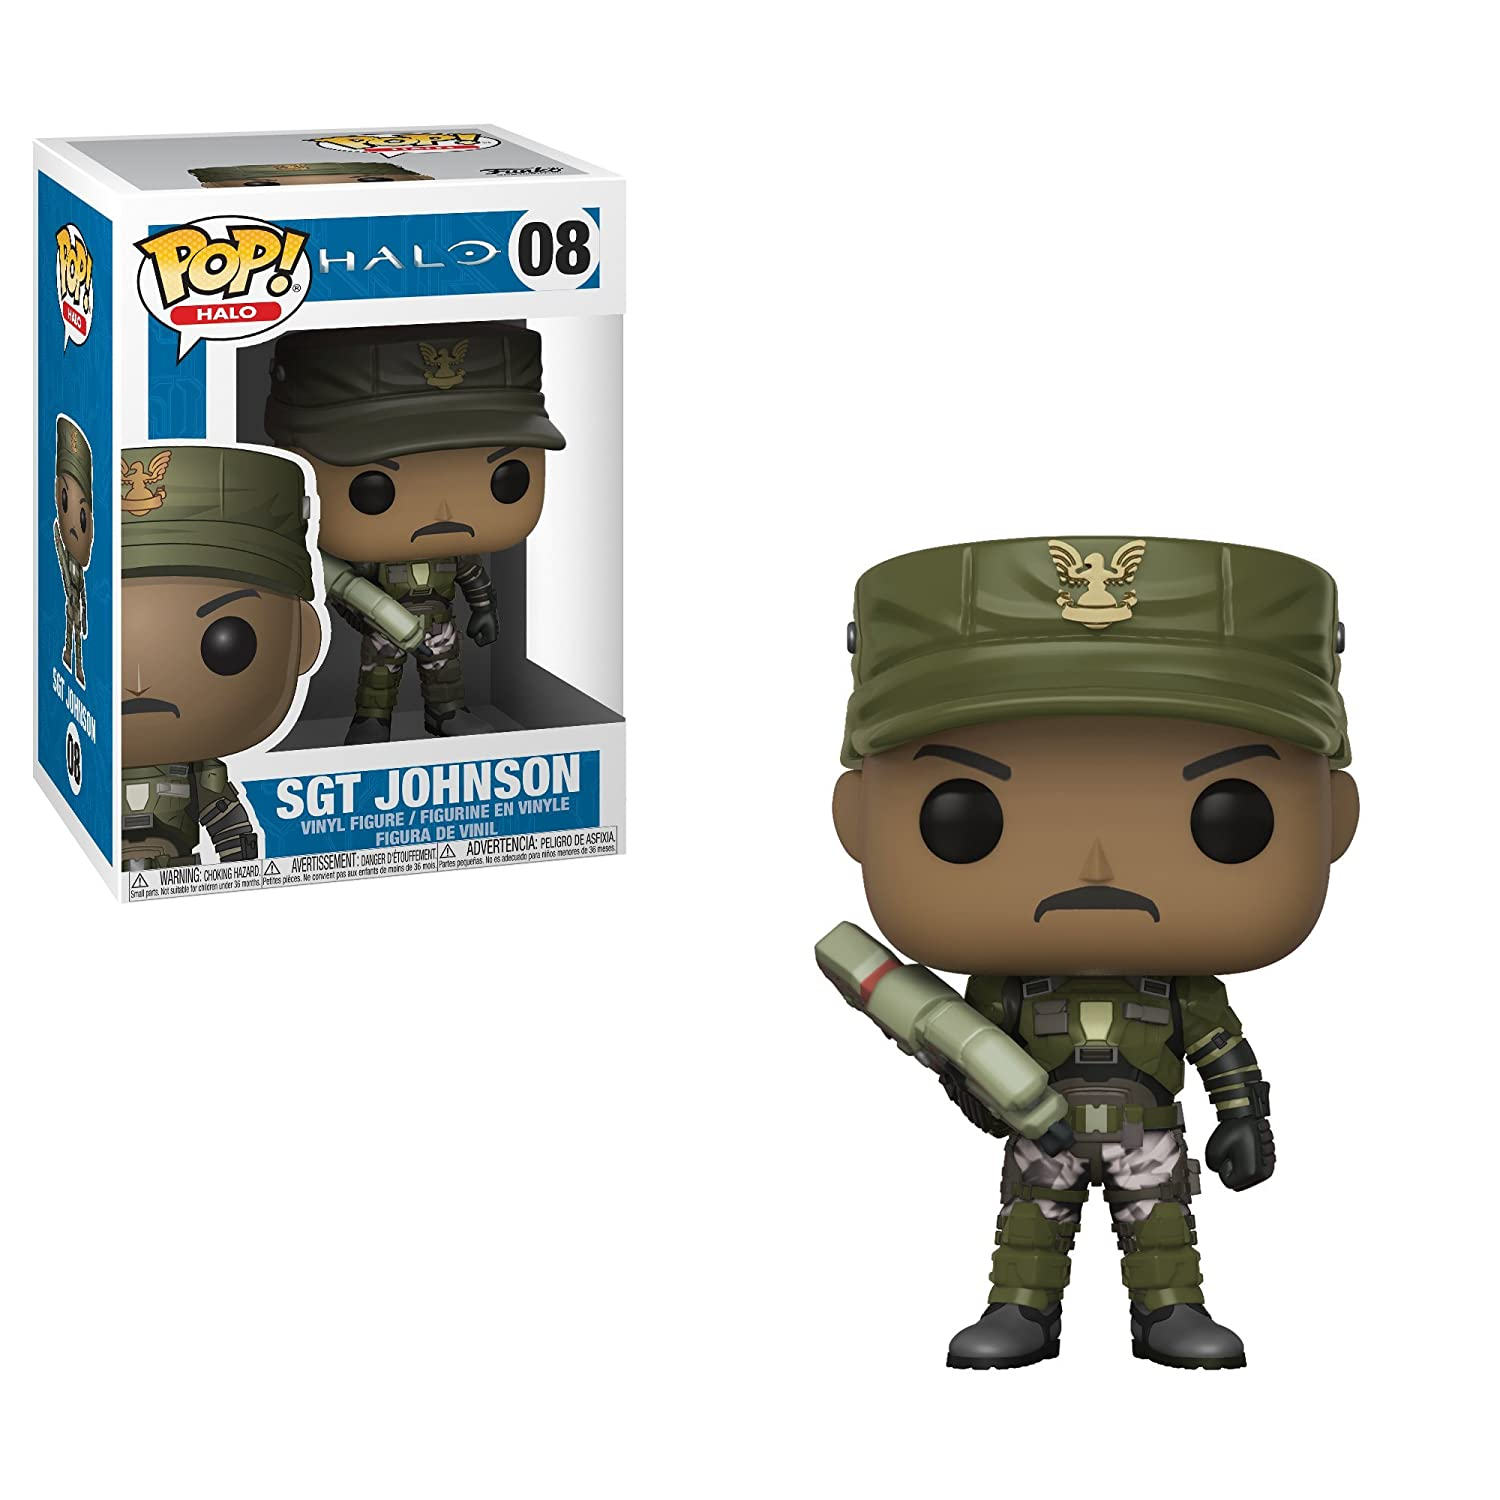 Funko POP! Games: Halo Sergeant Johnson (Styles May Vary) Collectible Figure, Multicolor